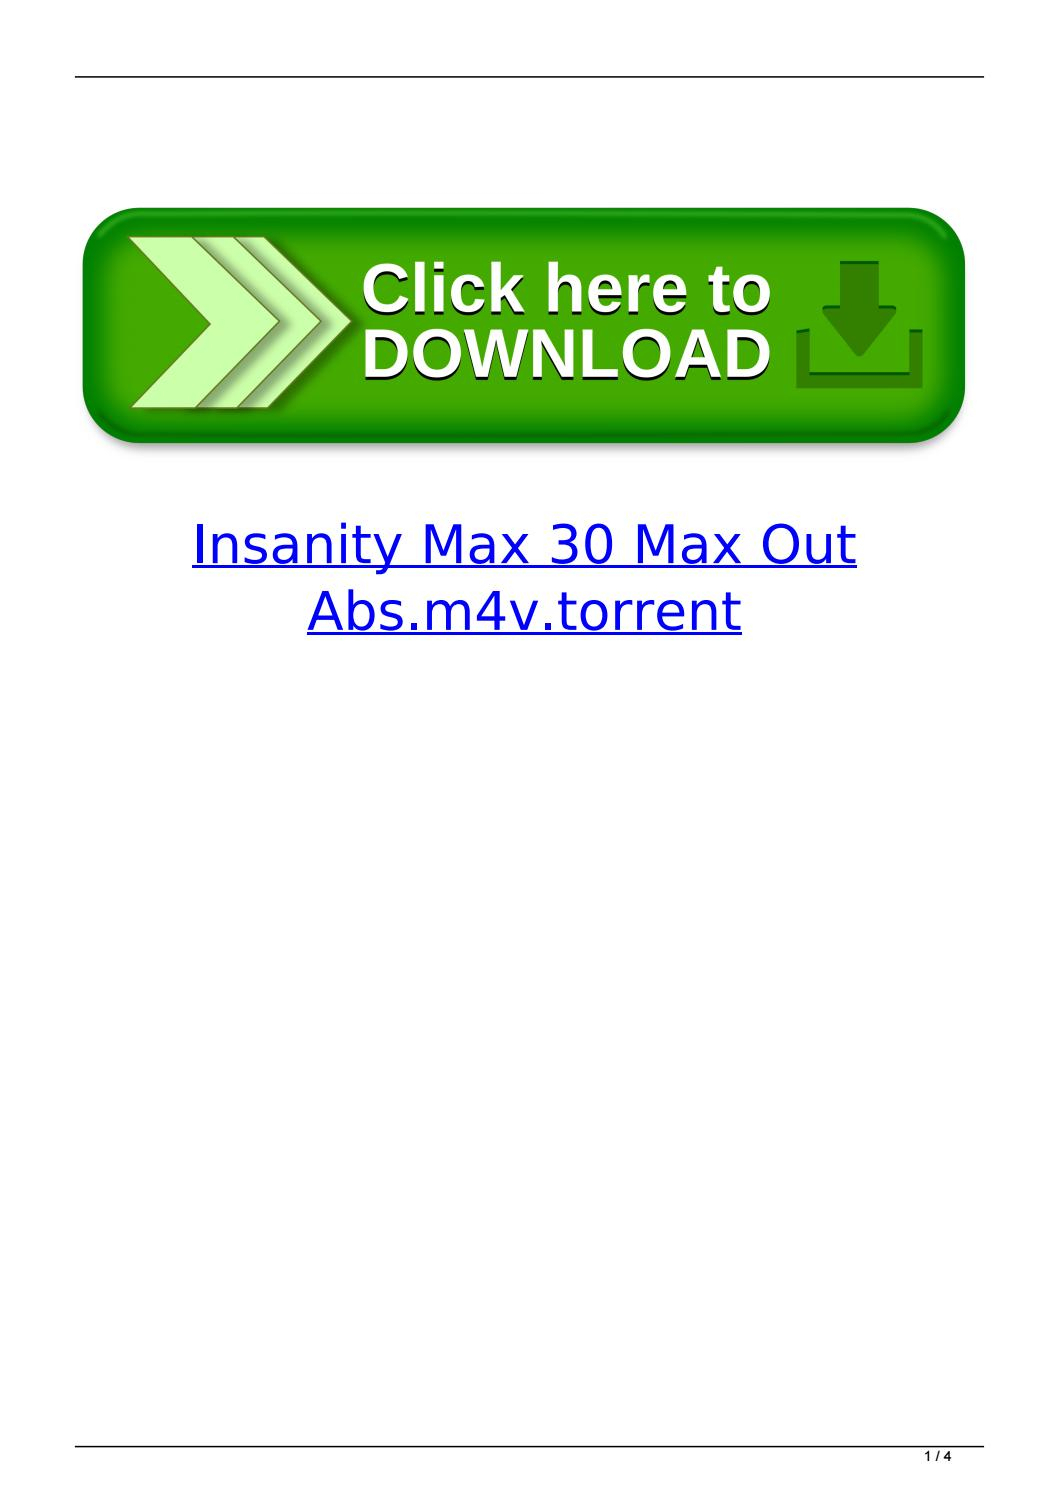 Insanity Max 30 Max Out Abs.m4V.torrent By Dacenunla  Issuu throughout Insanity Max 30 Schedule Pdf